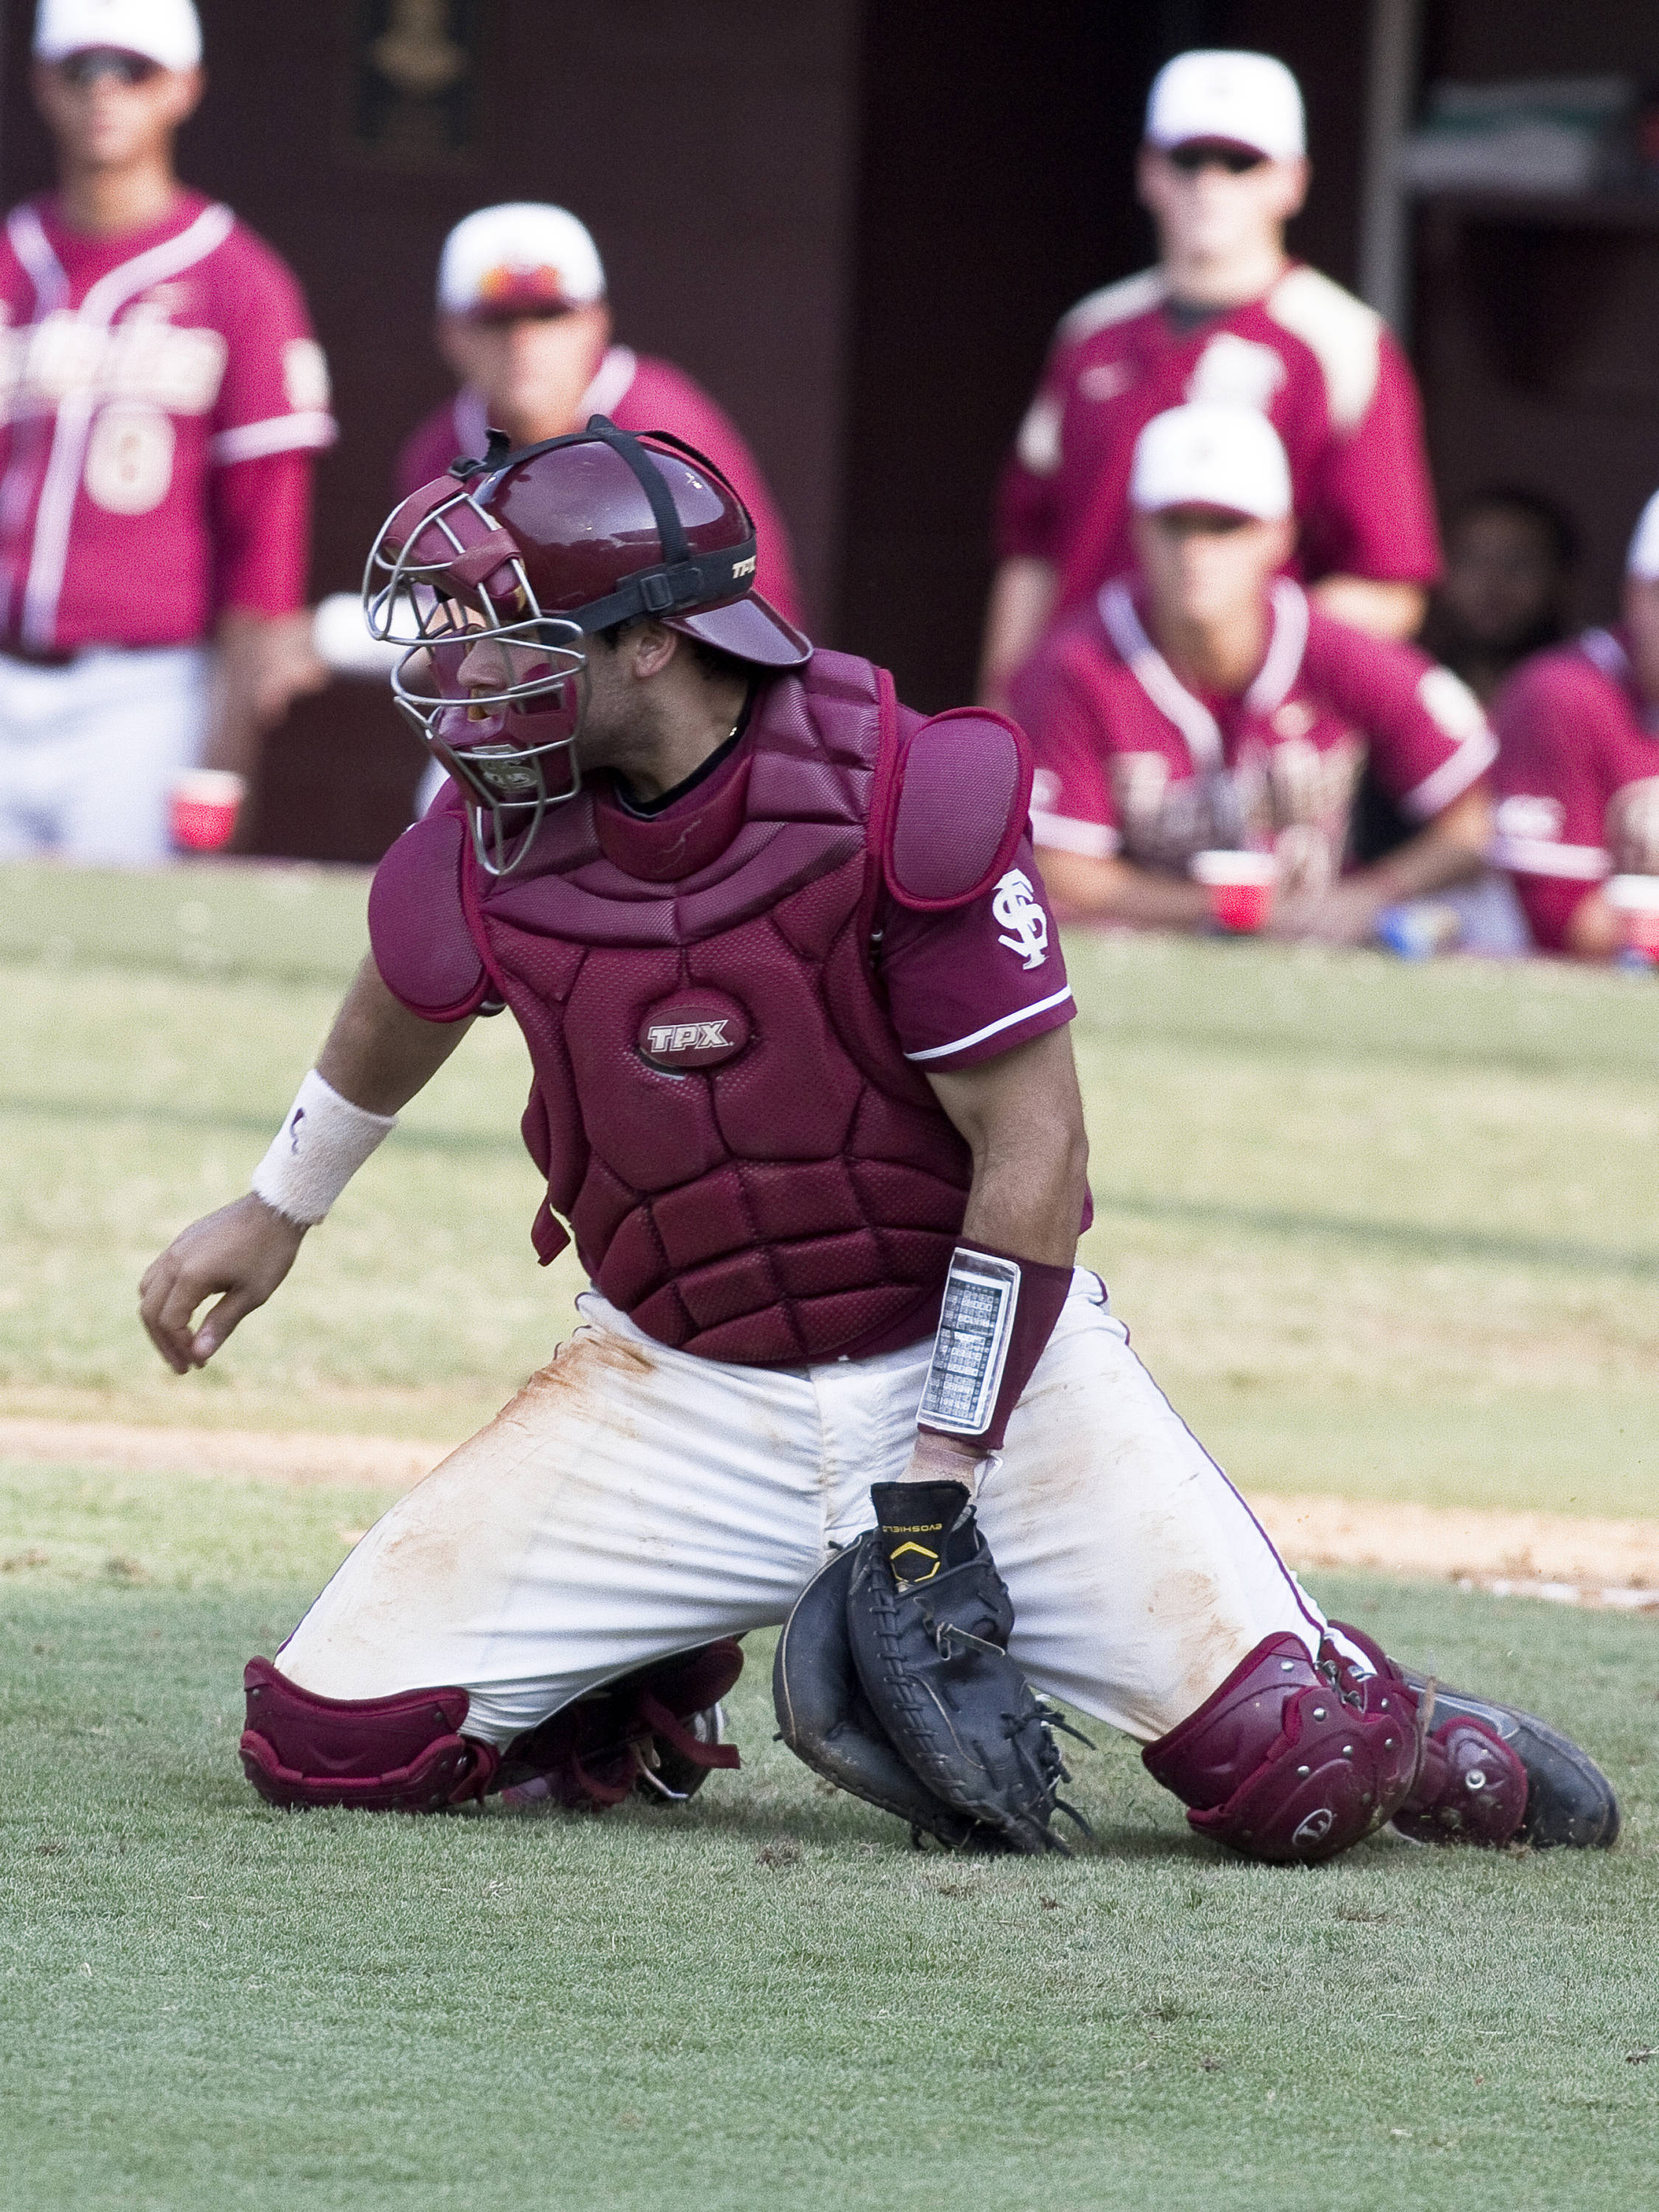 Catcher Rafael Lopez (29) coming out to cut off a throw to the plate